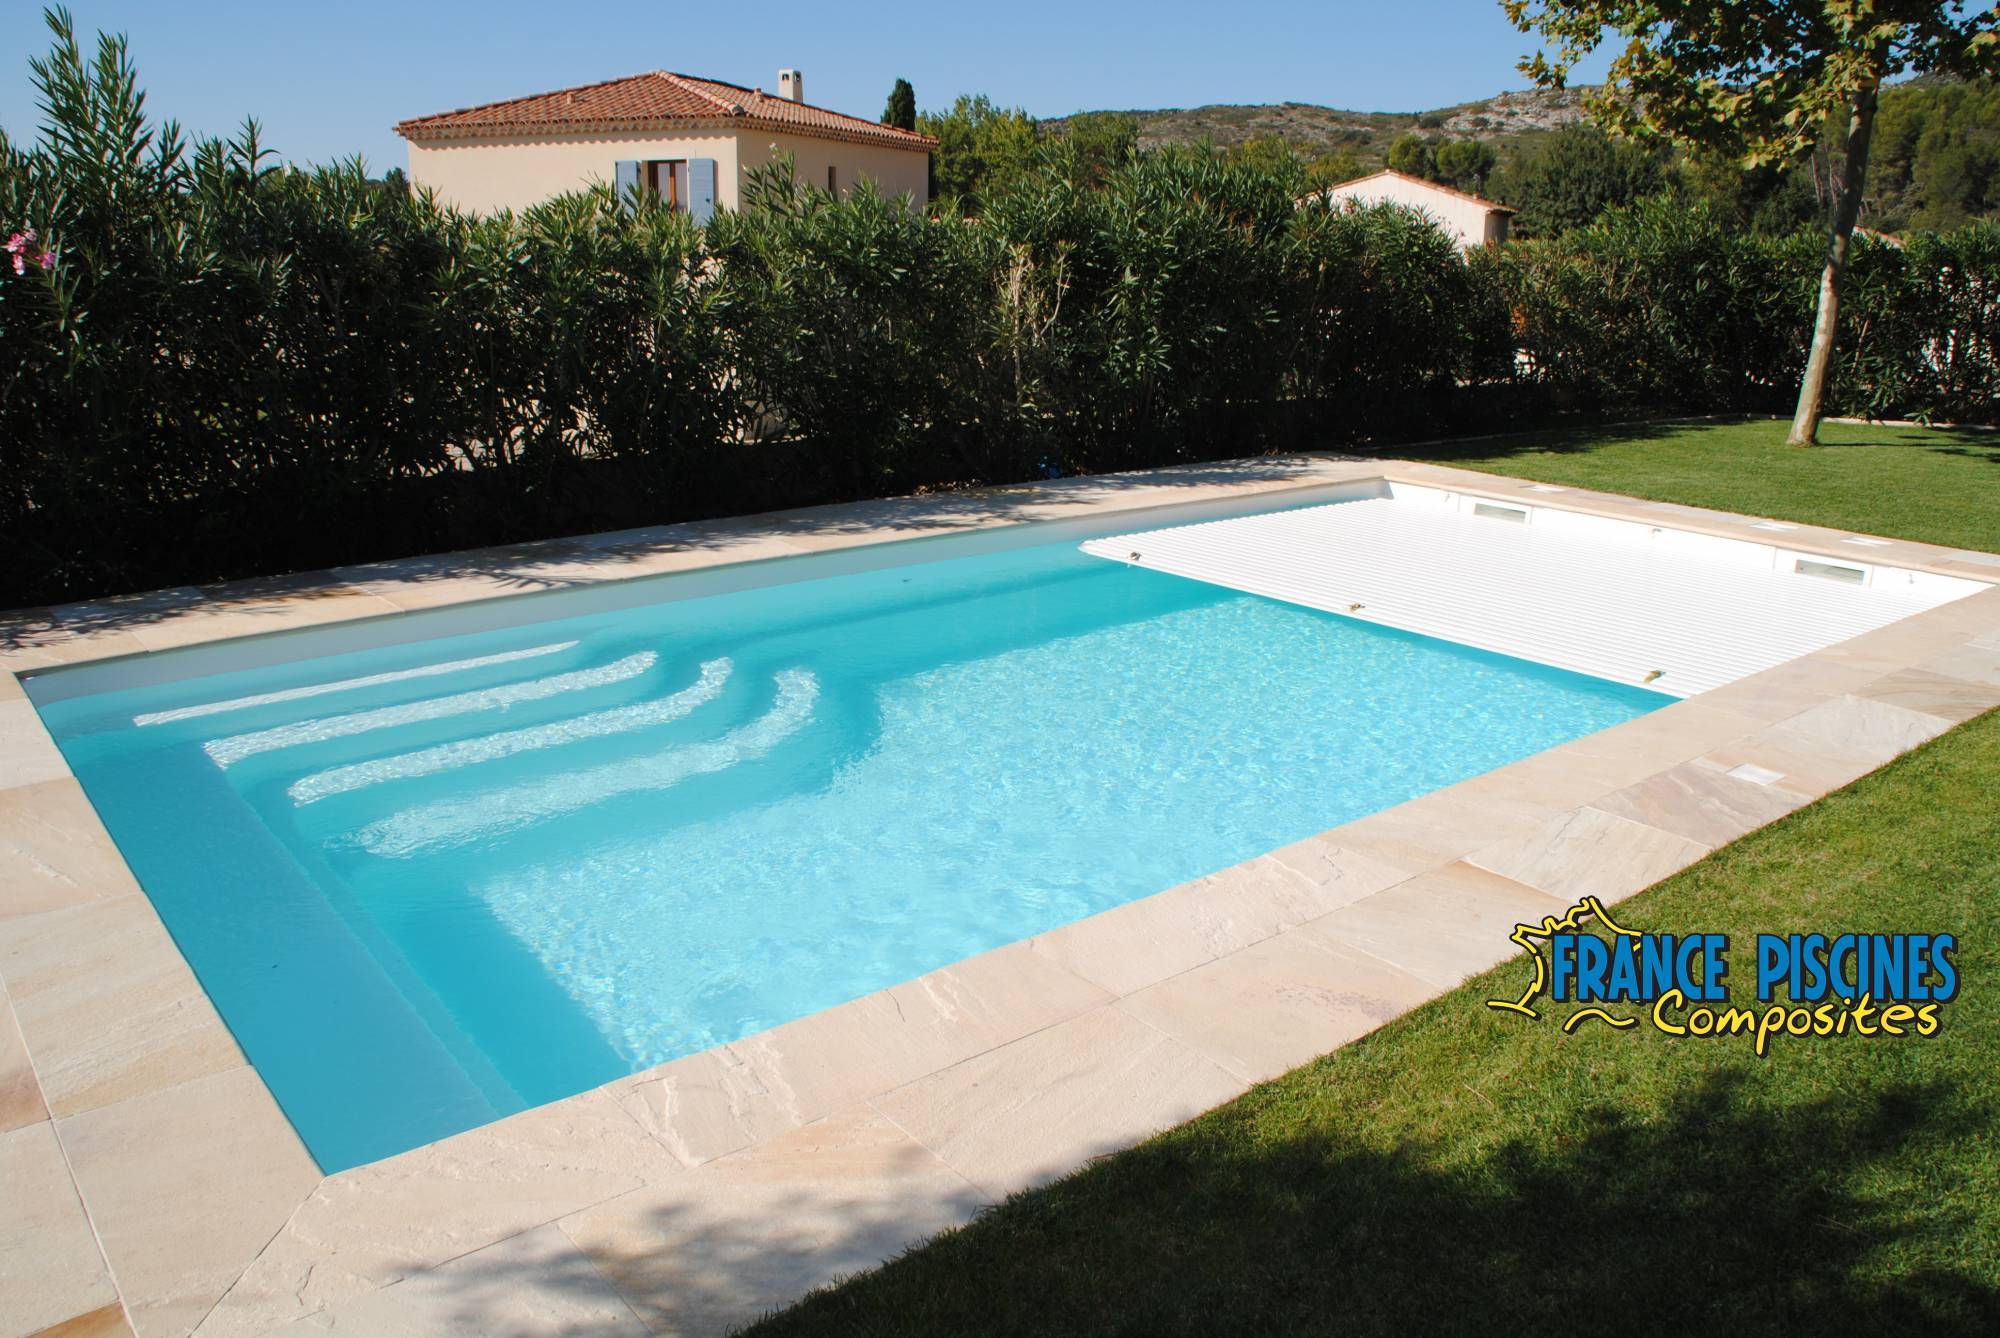 Vente et pose de piscine enterr e coque polyester for Coque piscine polyester